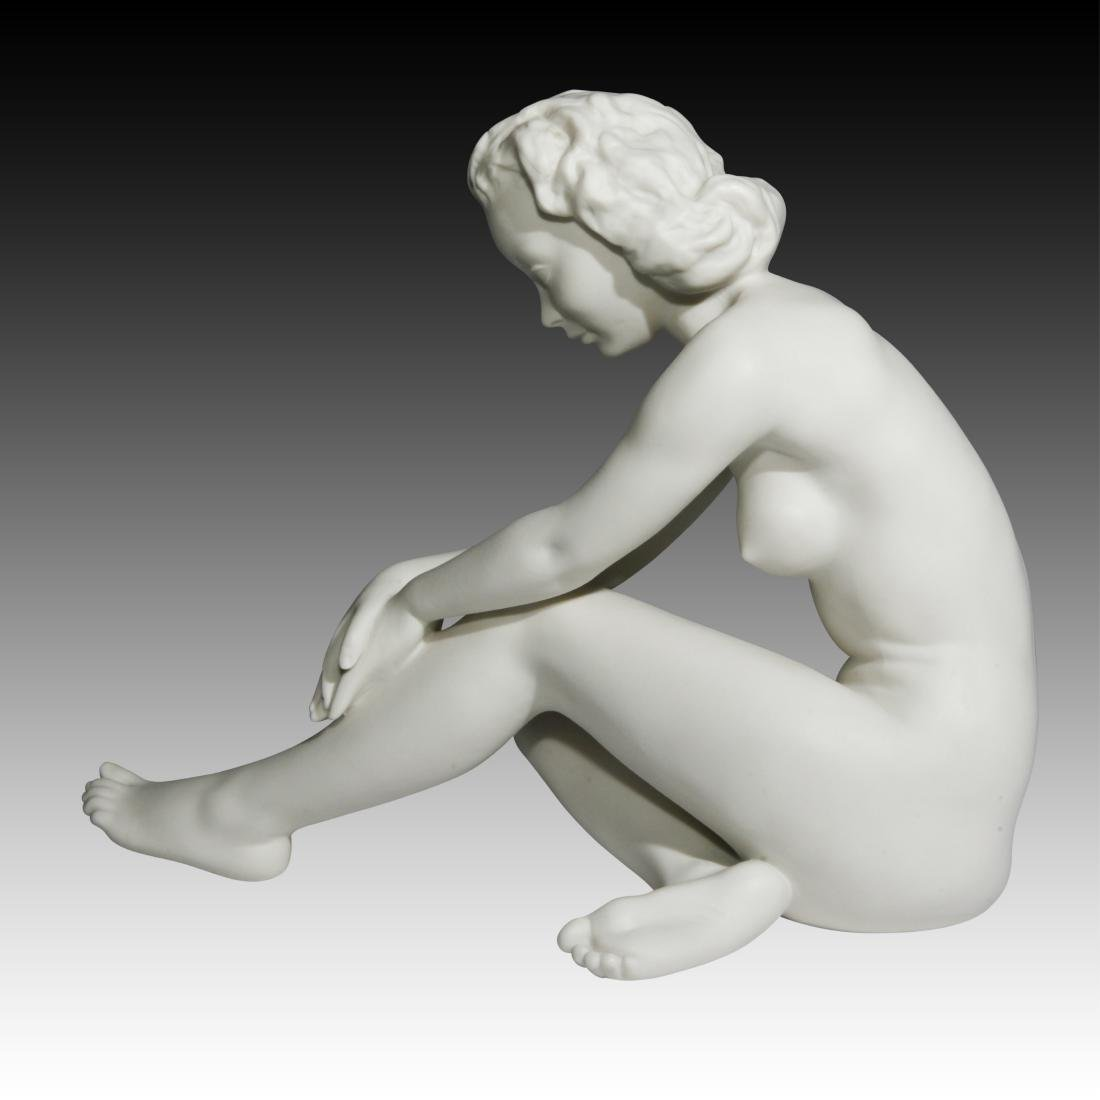 Hutschenreuther Large Seated Nude Woman Figurine - 2